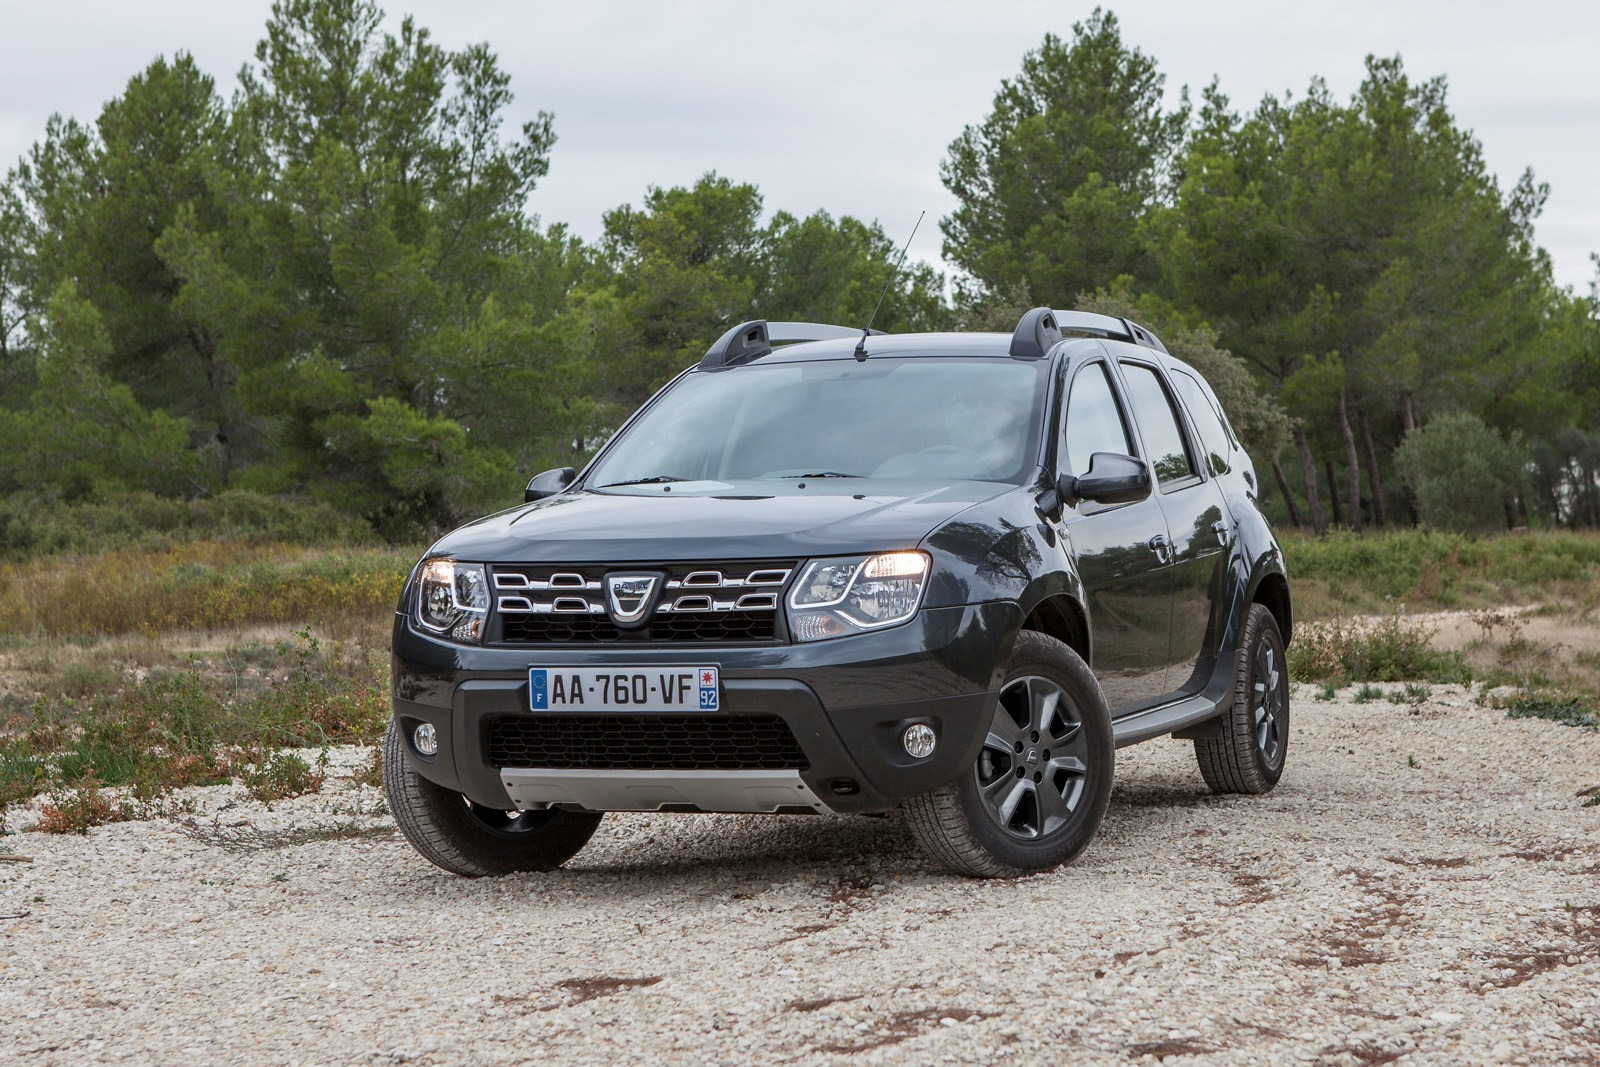 New dacia duster 1 2 tce detailed video autoevolution for Dacia duster foto